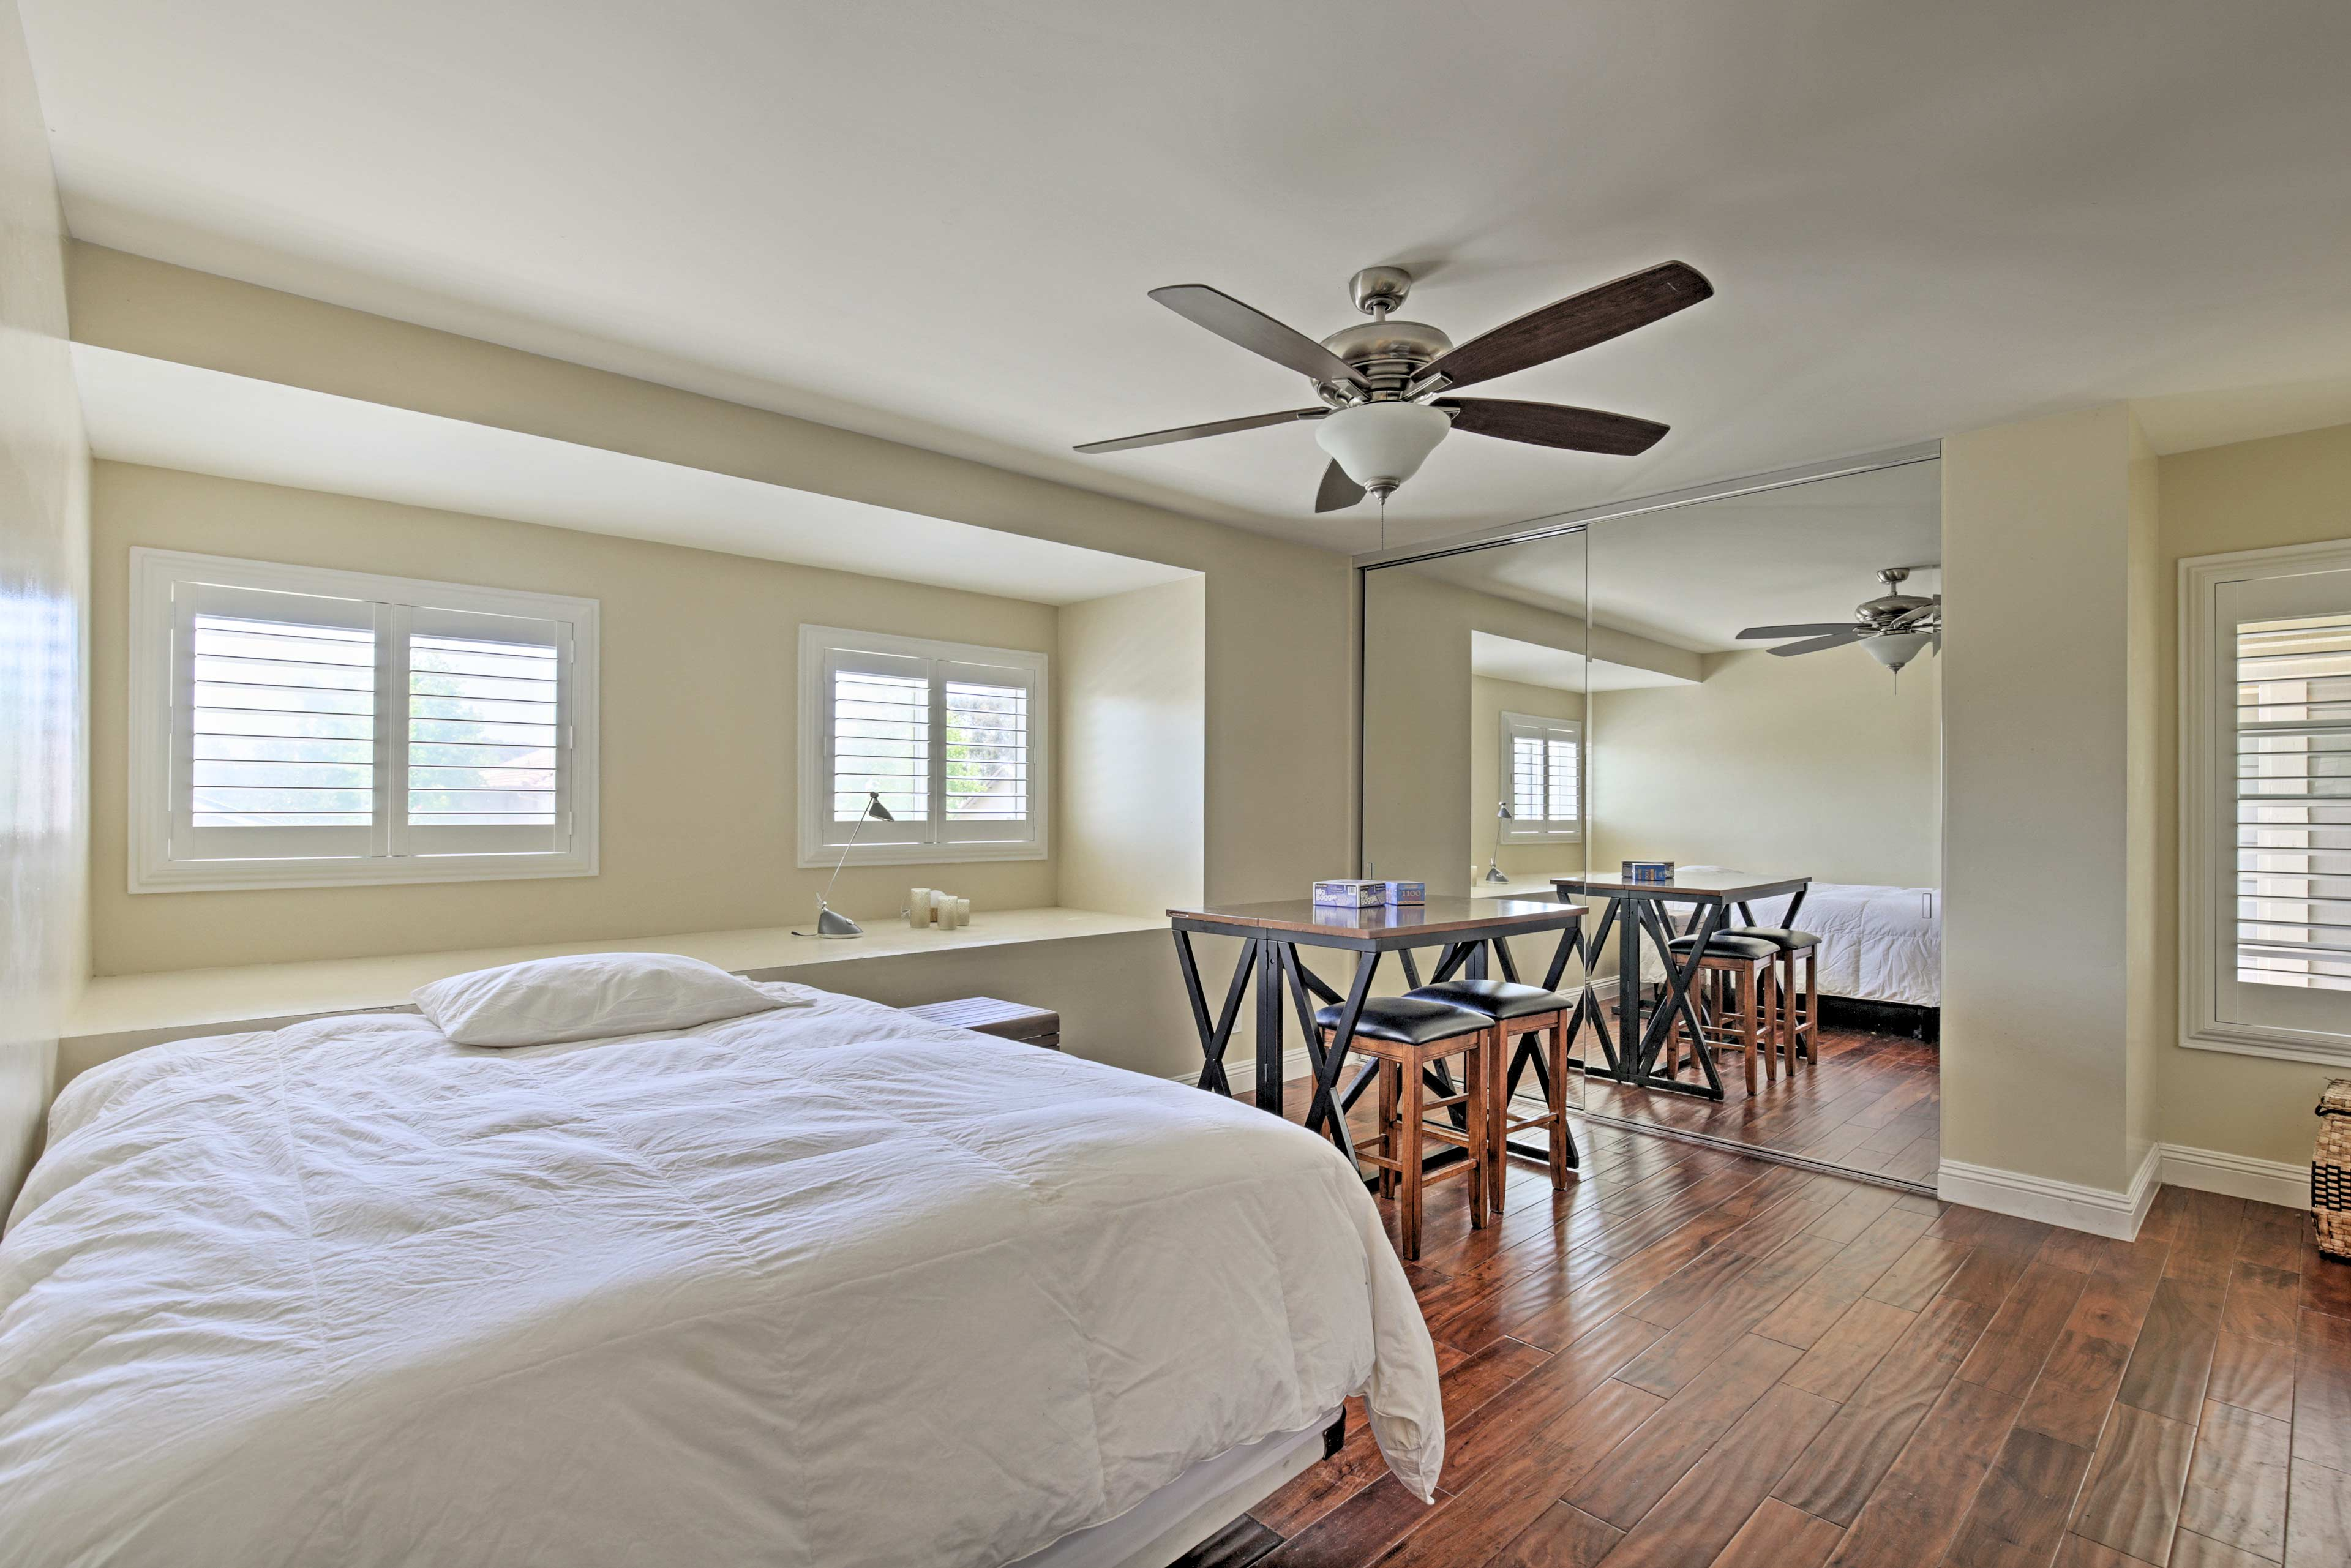 The 4th bedroom, with a queen bed, doubles as an entertainment room!